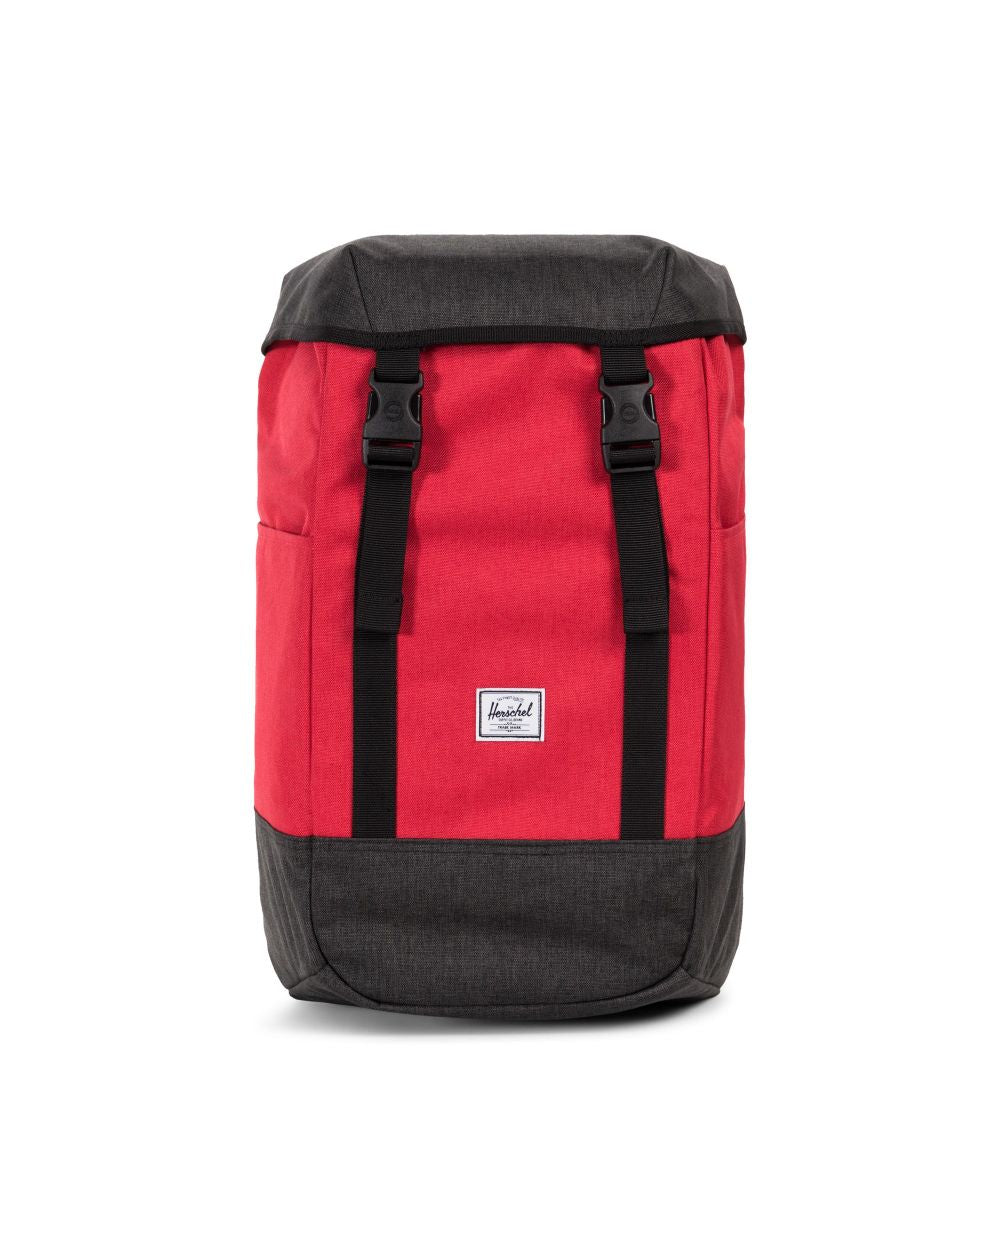 Herschel Supply Co. - Iona Backpack, Barbados Cherry Crosshatch/Black Crosshatch